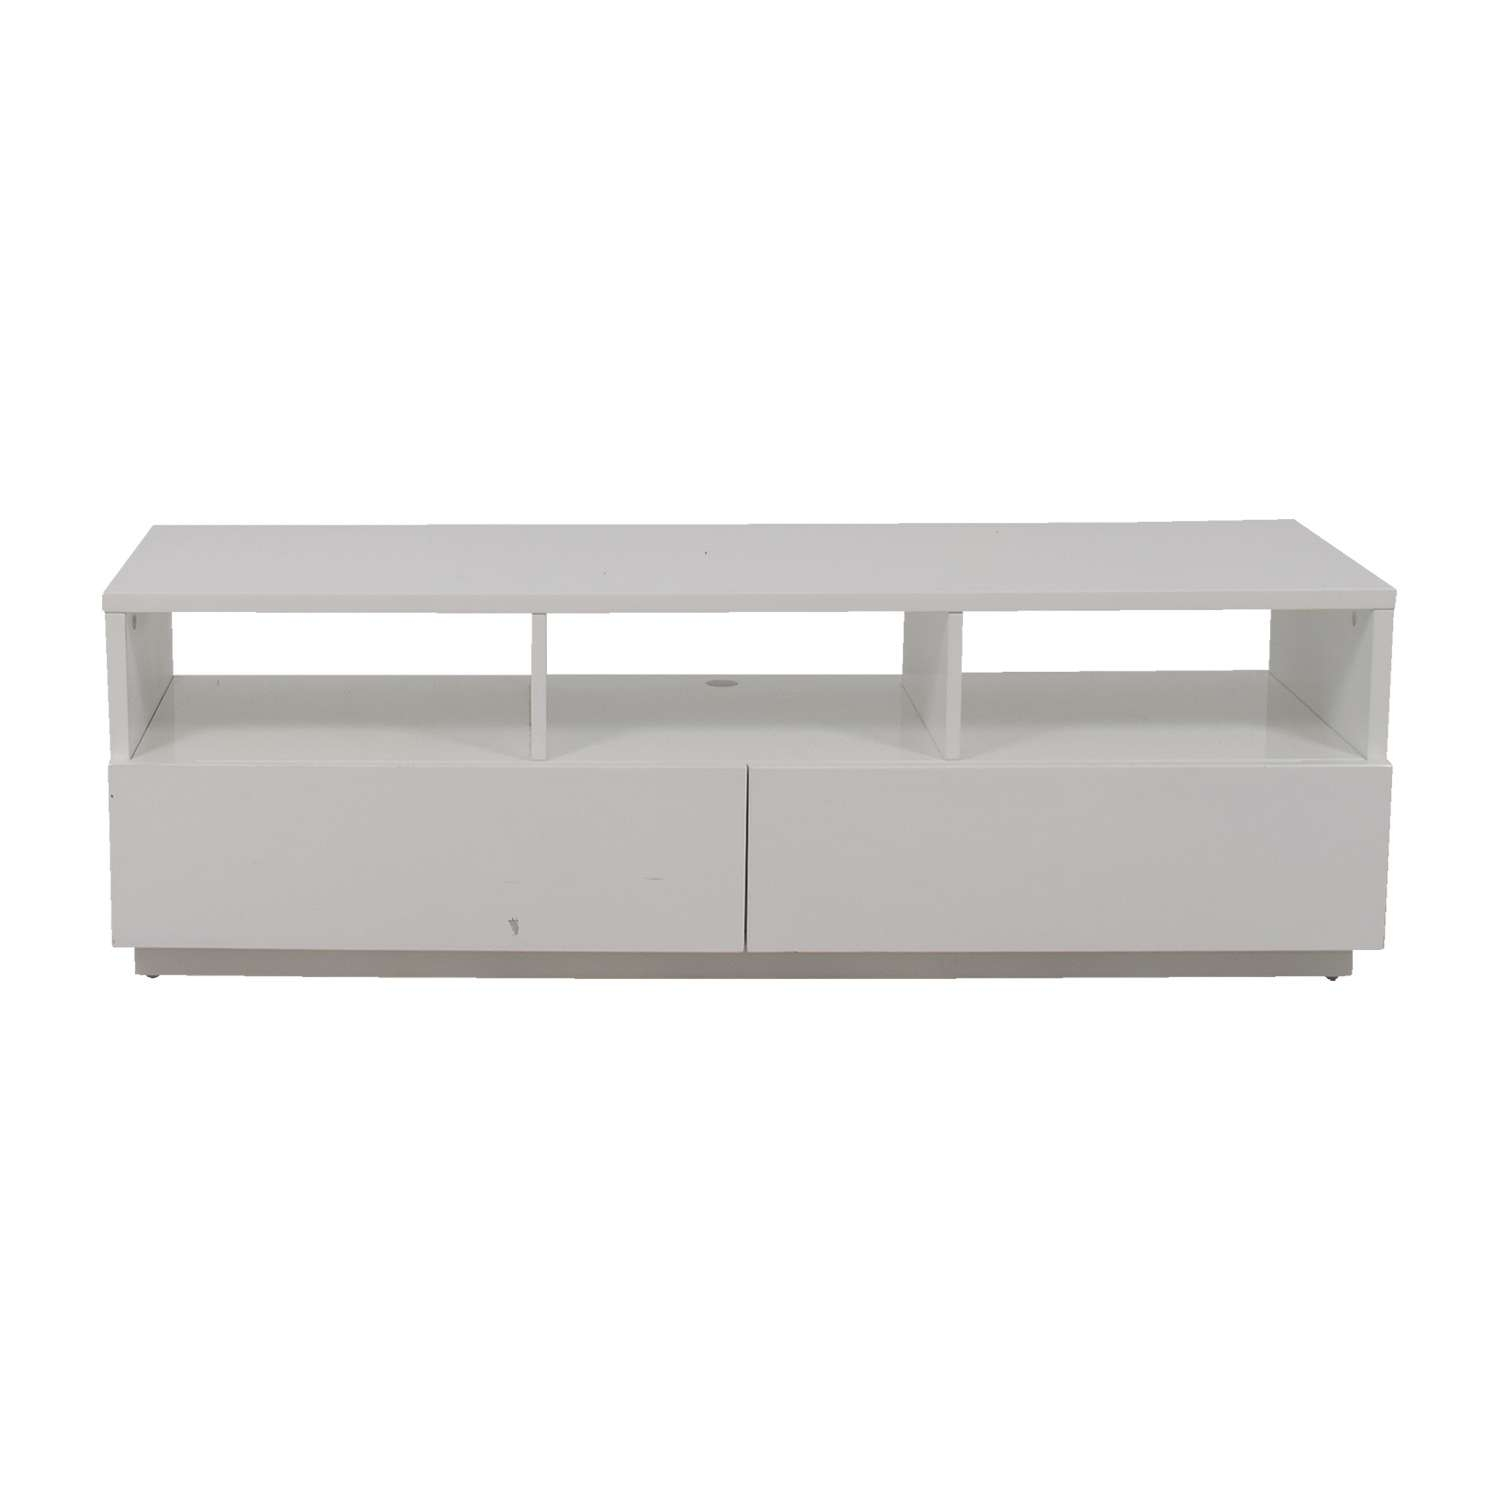 54% Off – Modern White Tv Stand / Storage In White Tv Stands Modern (View 1 of 15)